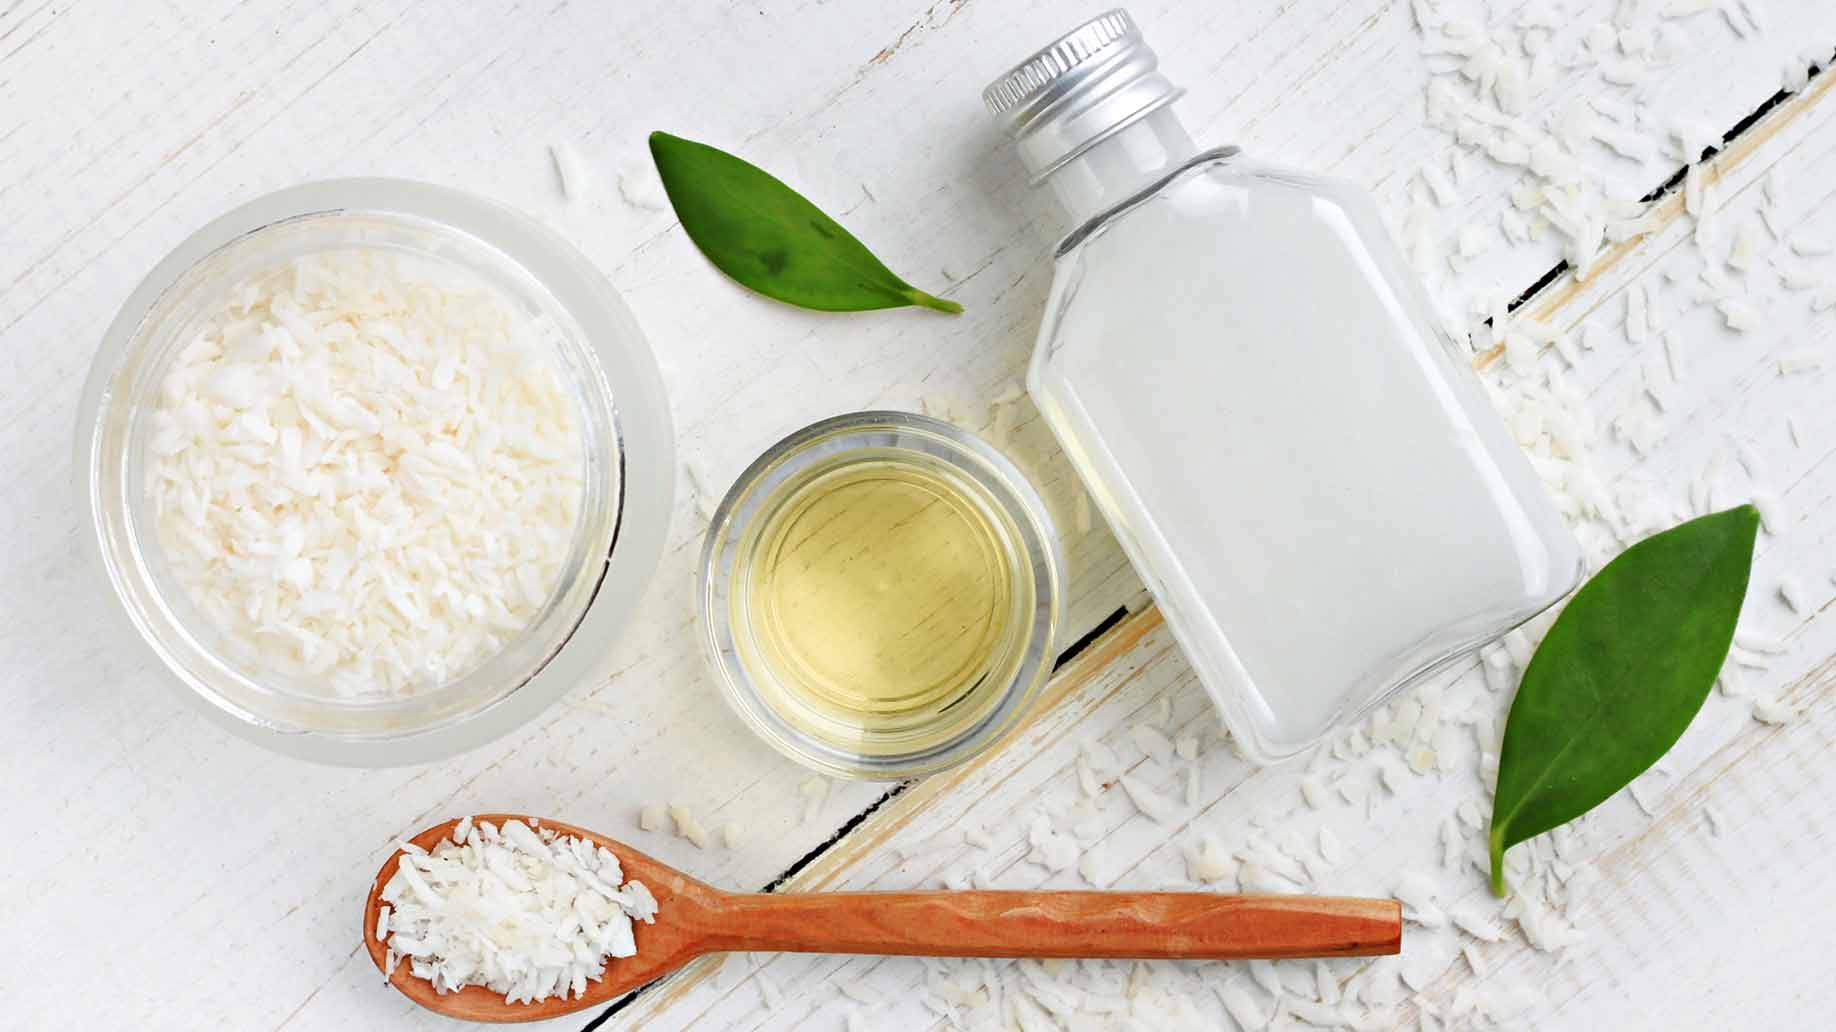 How to Make Your Own Natural Homemade Shampoo - 10 Best Recipes